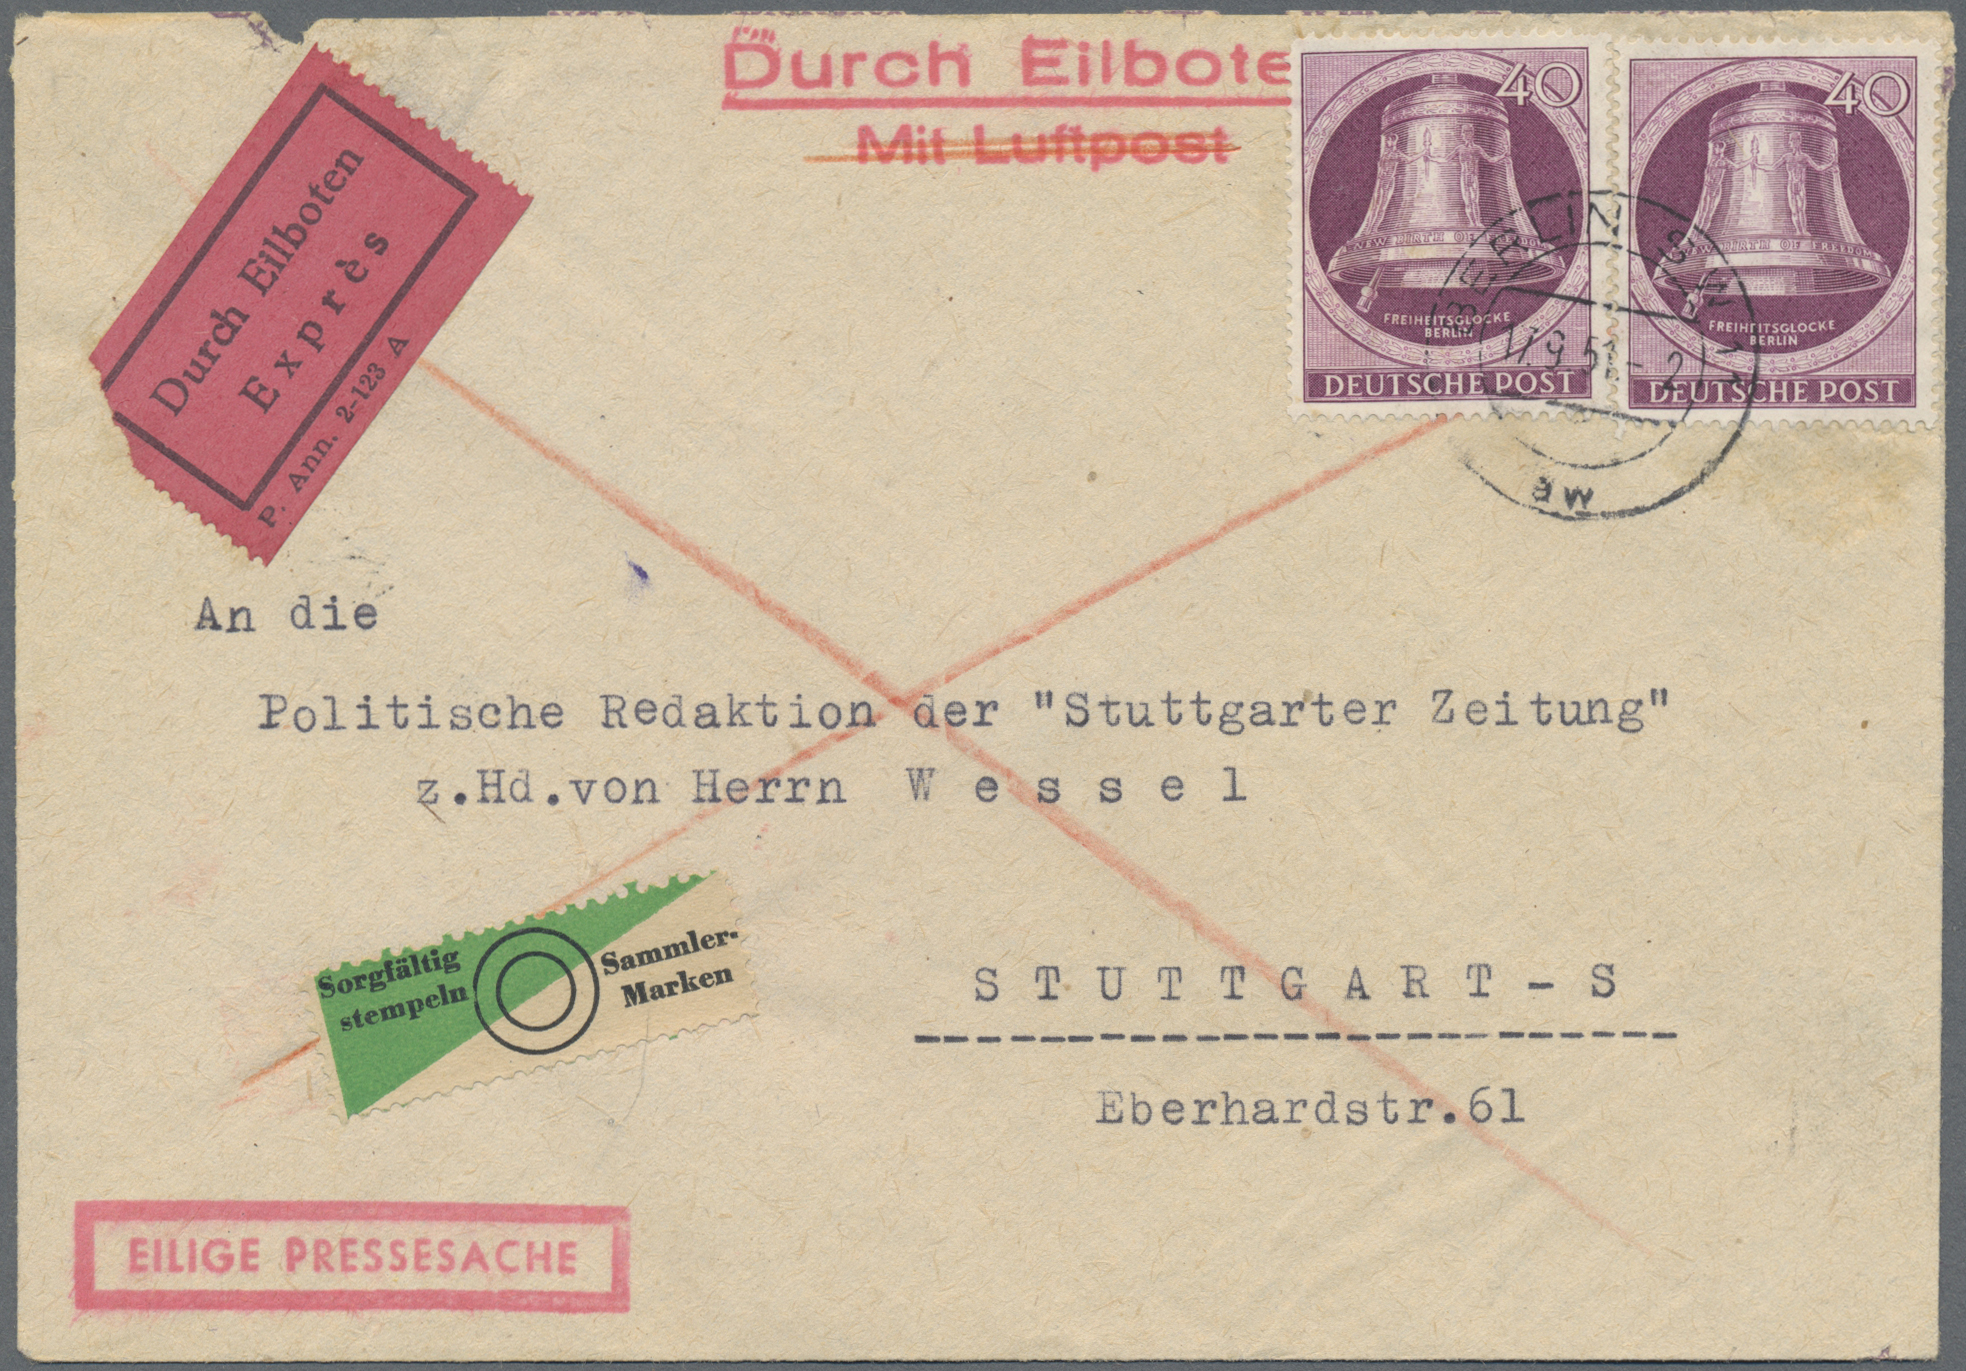 Lot 29367 - berlin  -  Auktionshaus Christoph Gärtner GmbH & Co. KG Sale #46 Gollcetions Germany - including the suplement